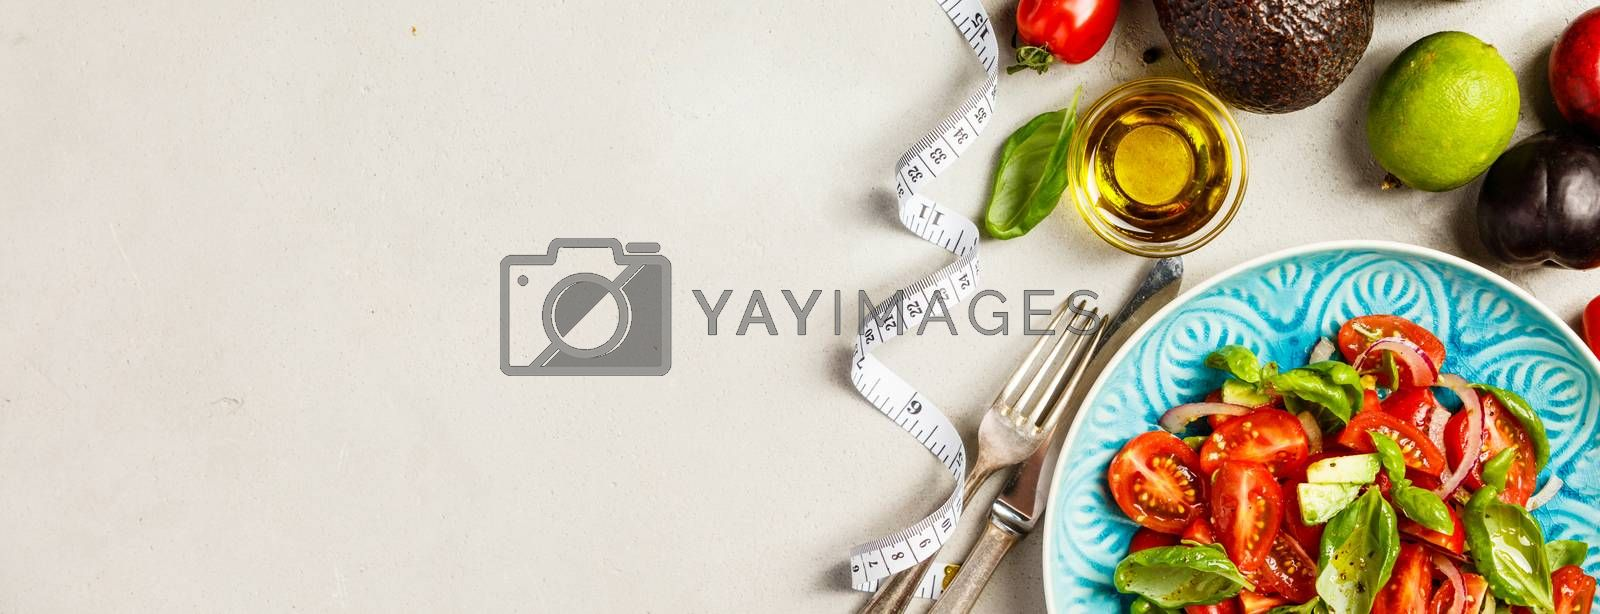 Tomato, basil, avocado and onion salad in blue plate for vegan, gluten free, allergy-friendly, clean eating or raw diet. Grey concrete background and top view